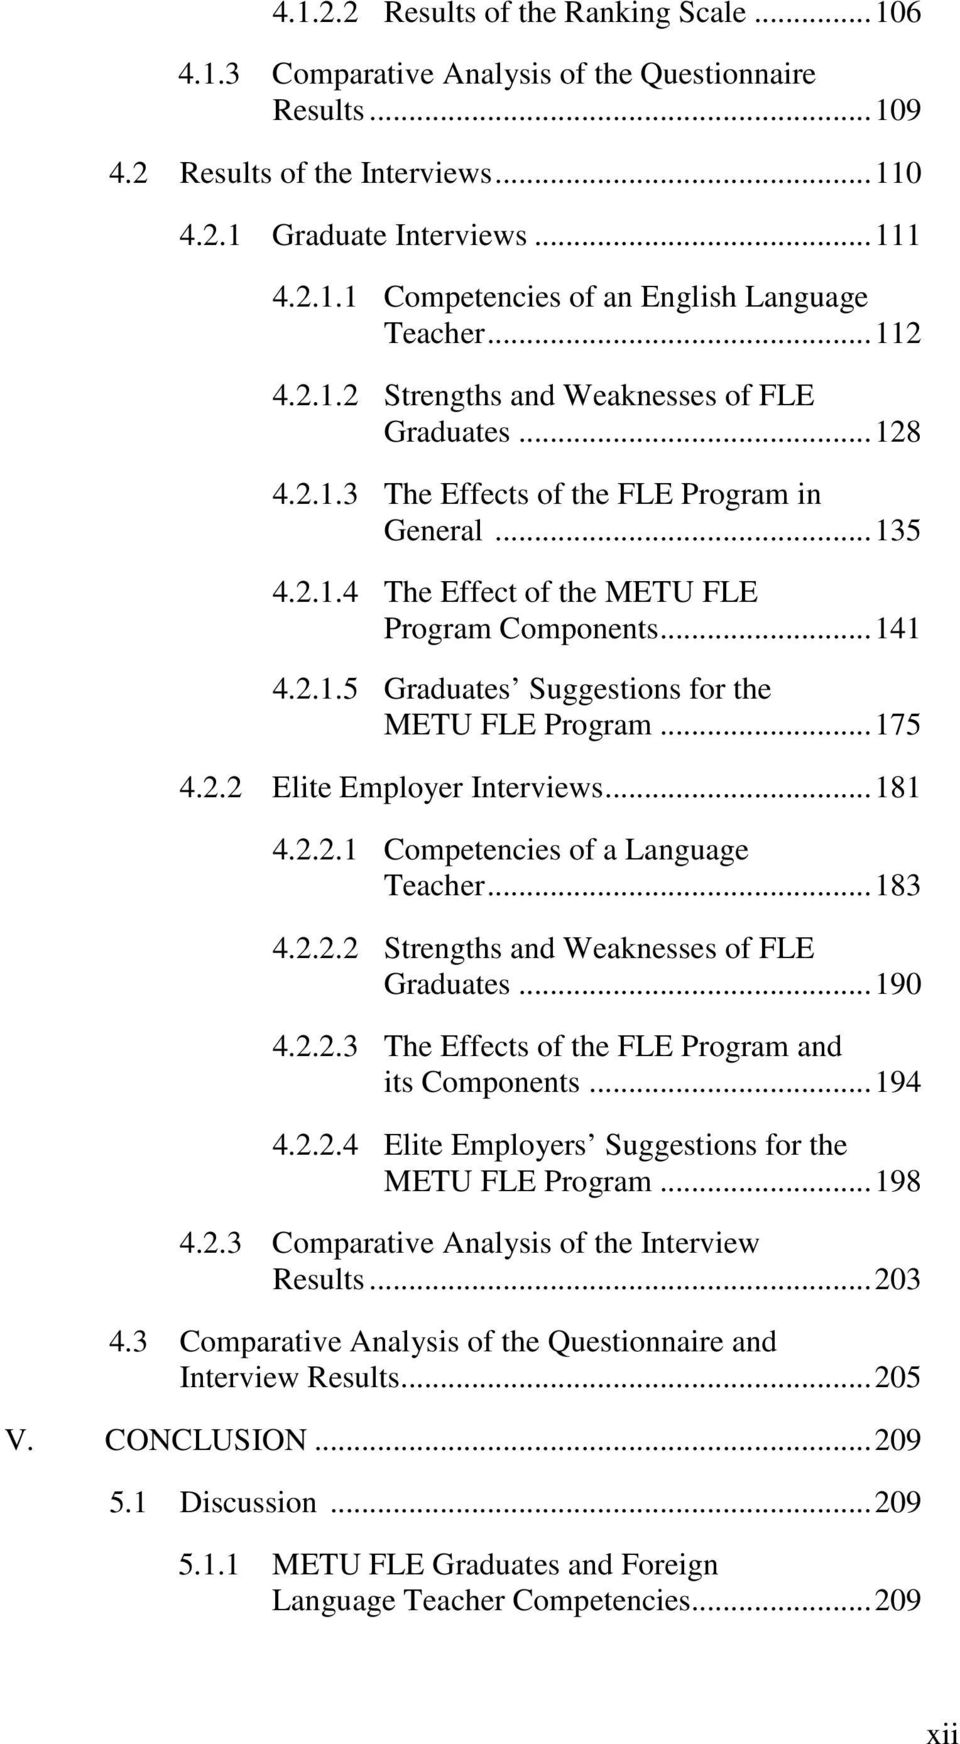 .. 175 4.2.2 Elite Employer Interviews... 181 4.2.2.1 Competencies of a Language Teacher... 183 4.2.2.2 Strengths and Weaknesses of FLE Graduates... 190 4.2.2.3 The Effects of the FLE Program and its Components.